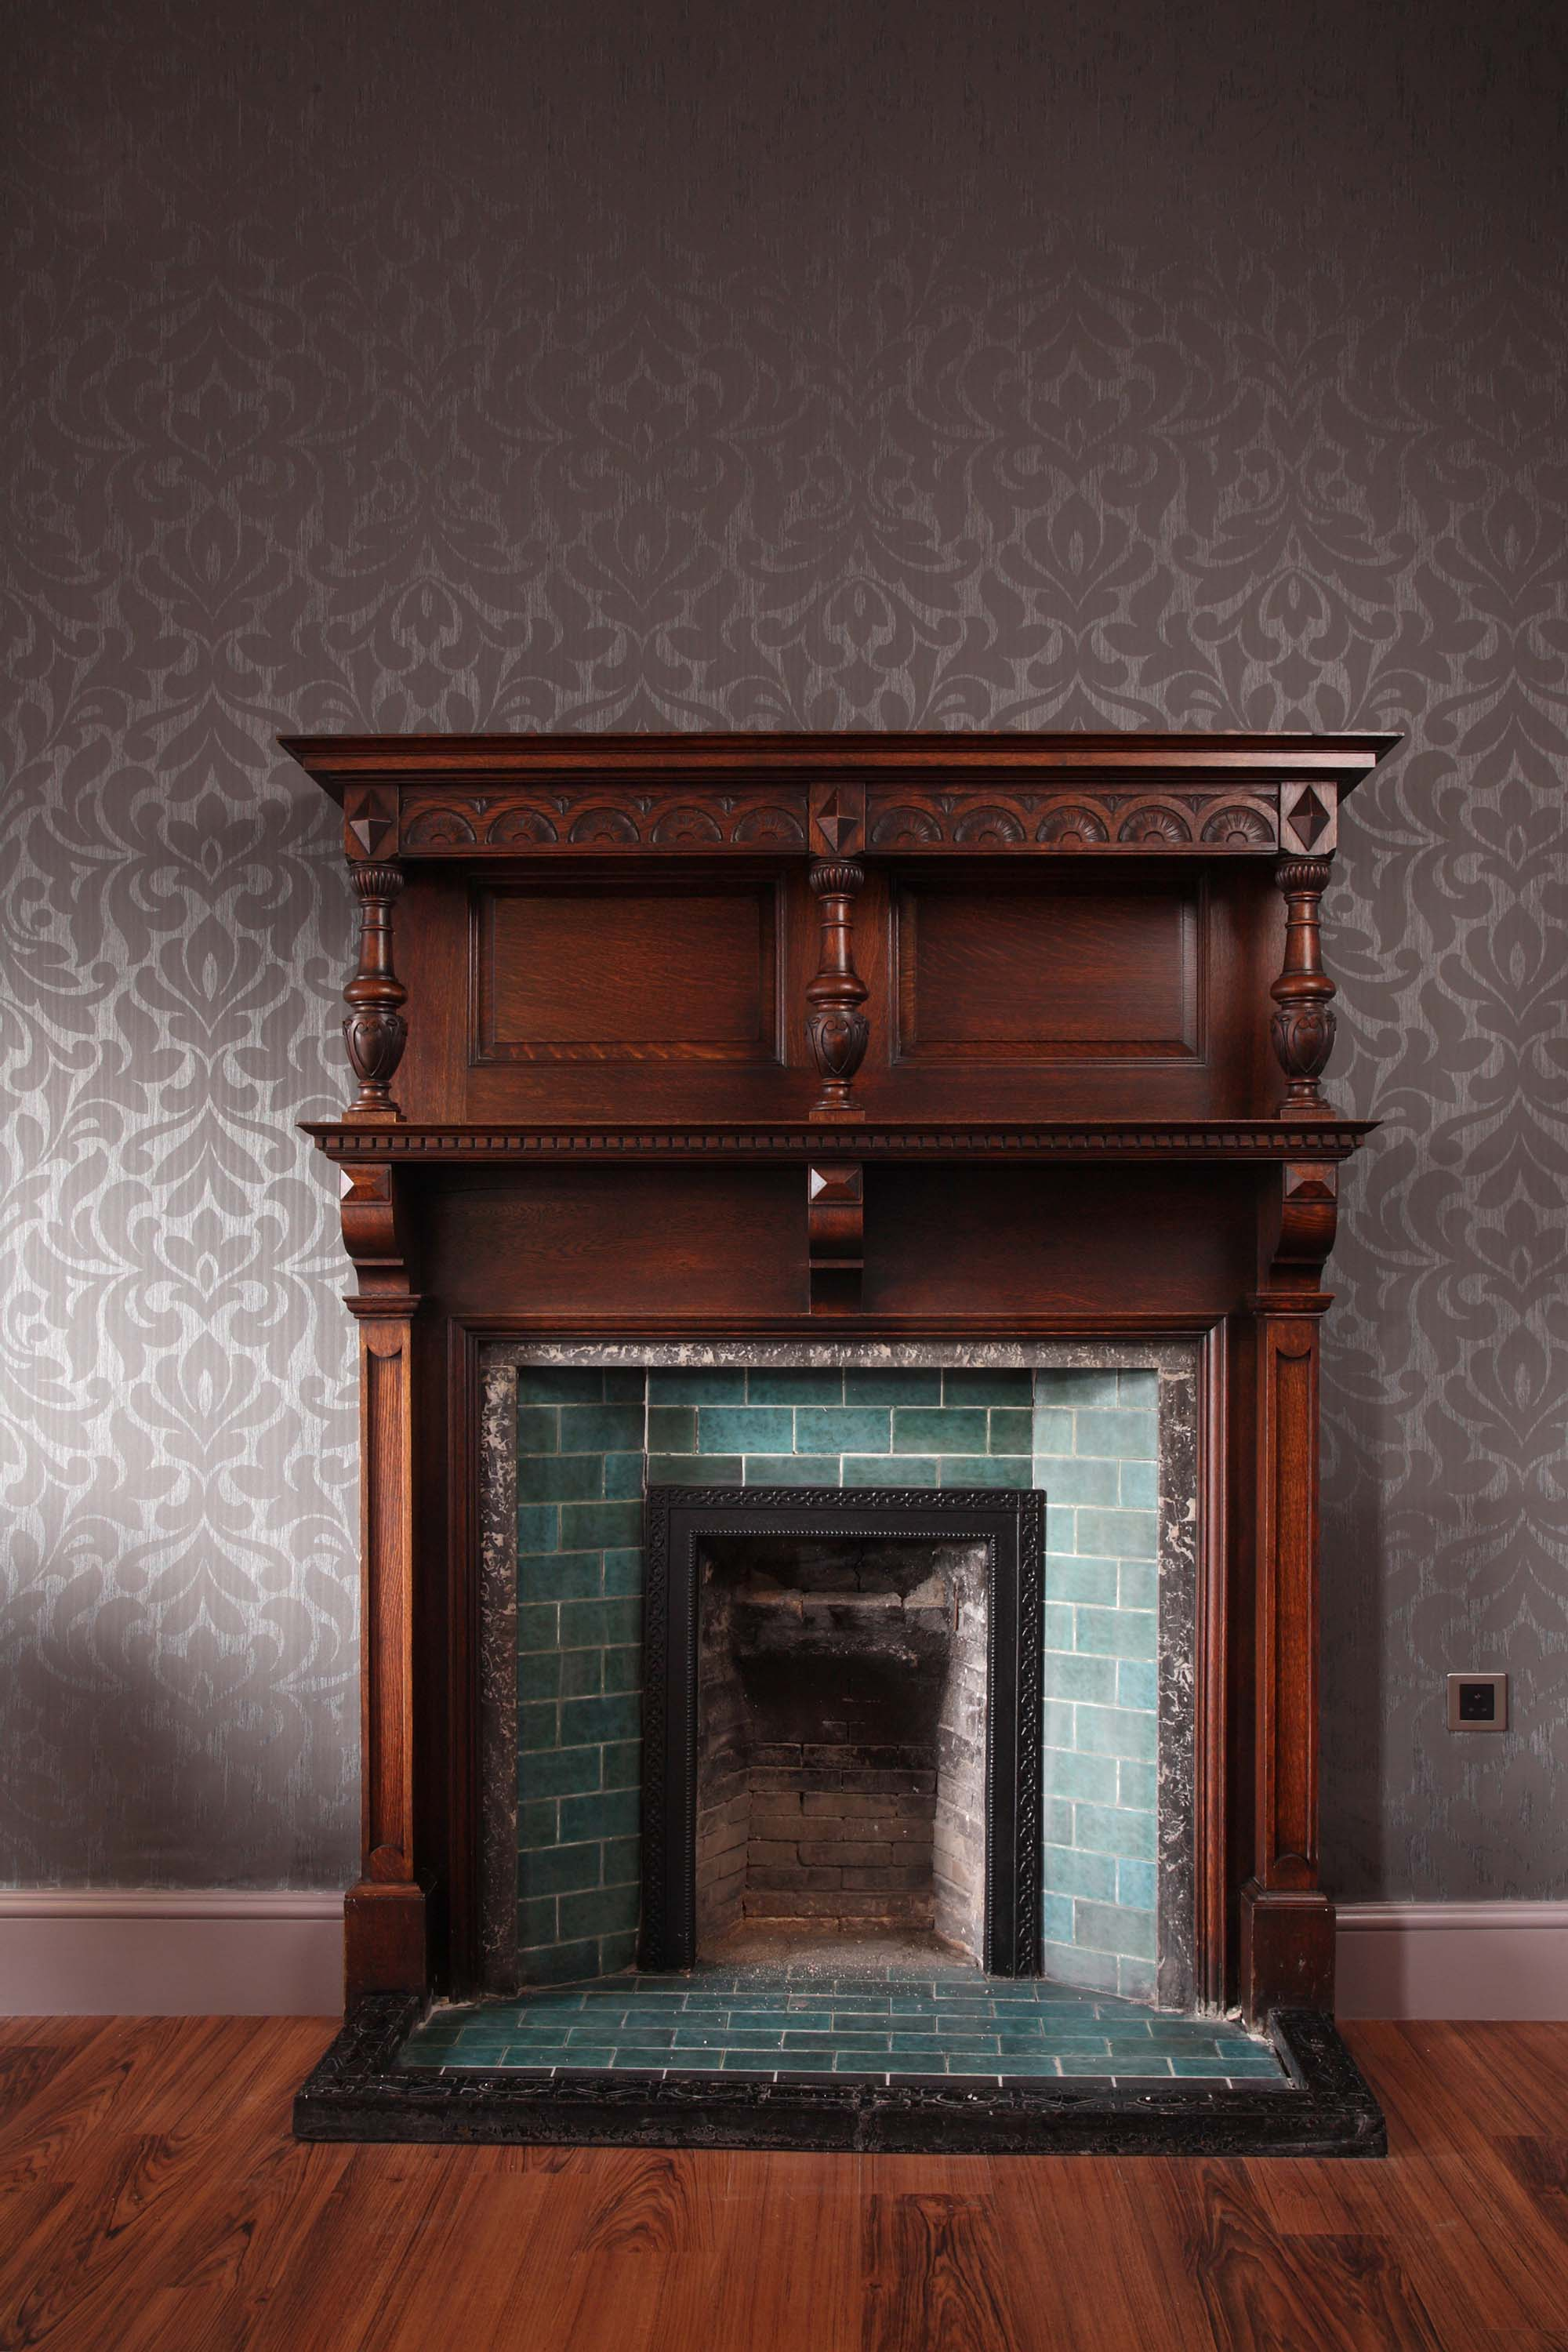 Original fire place